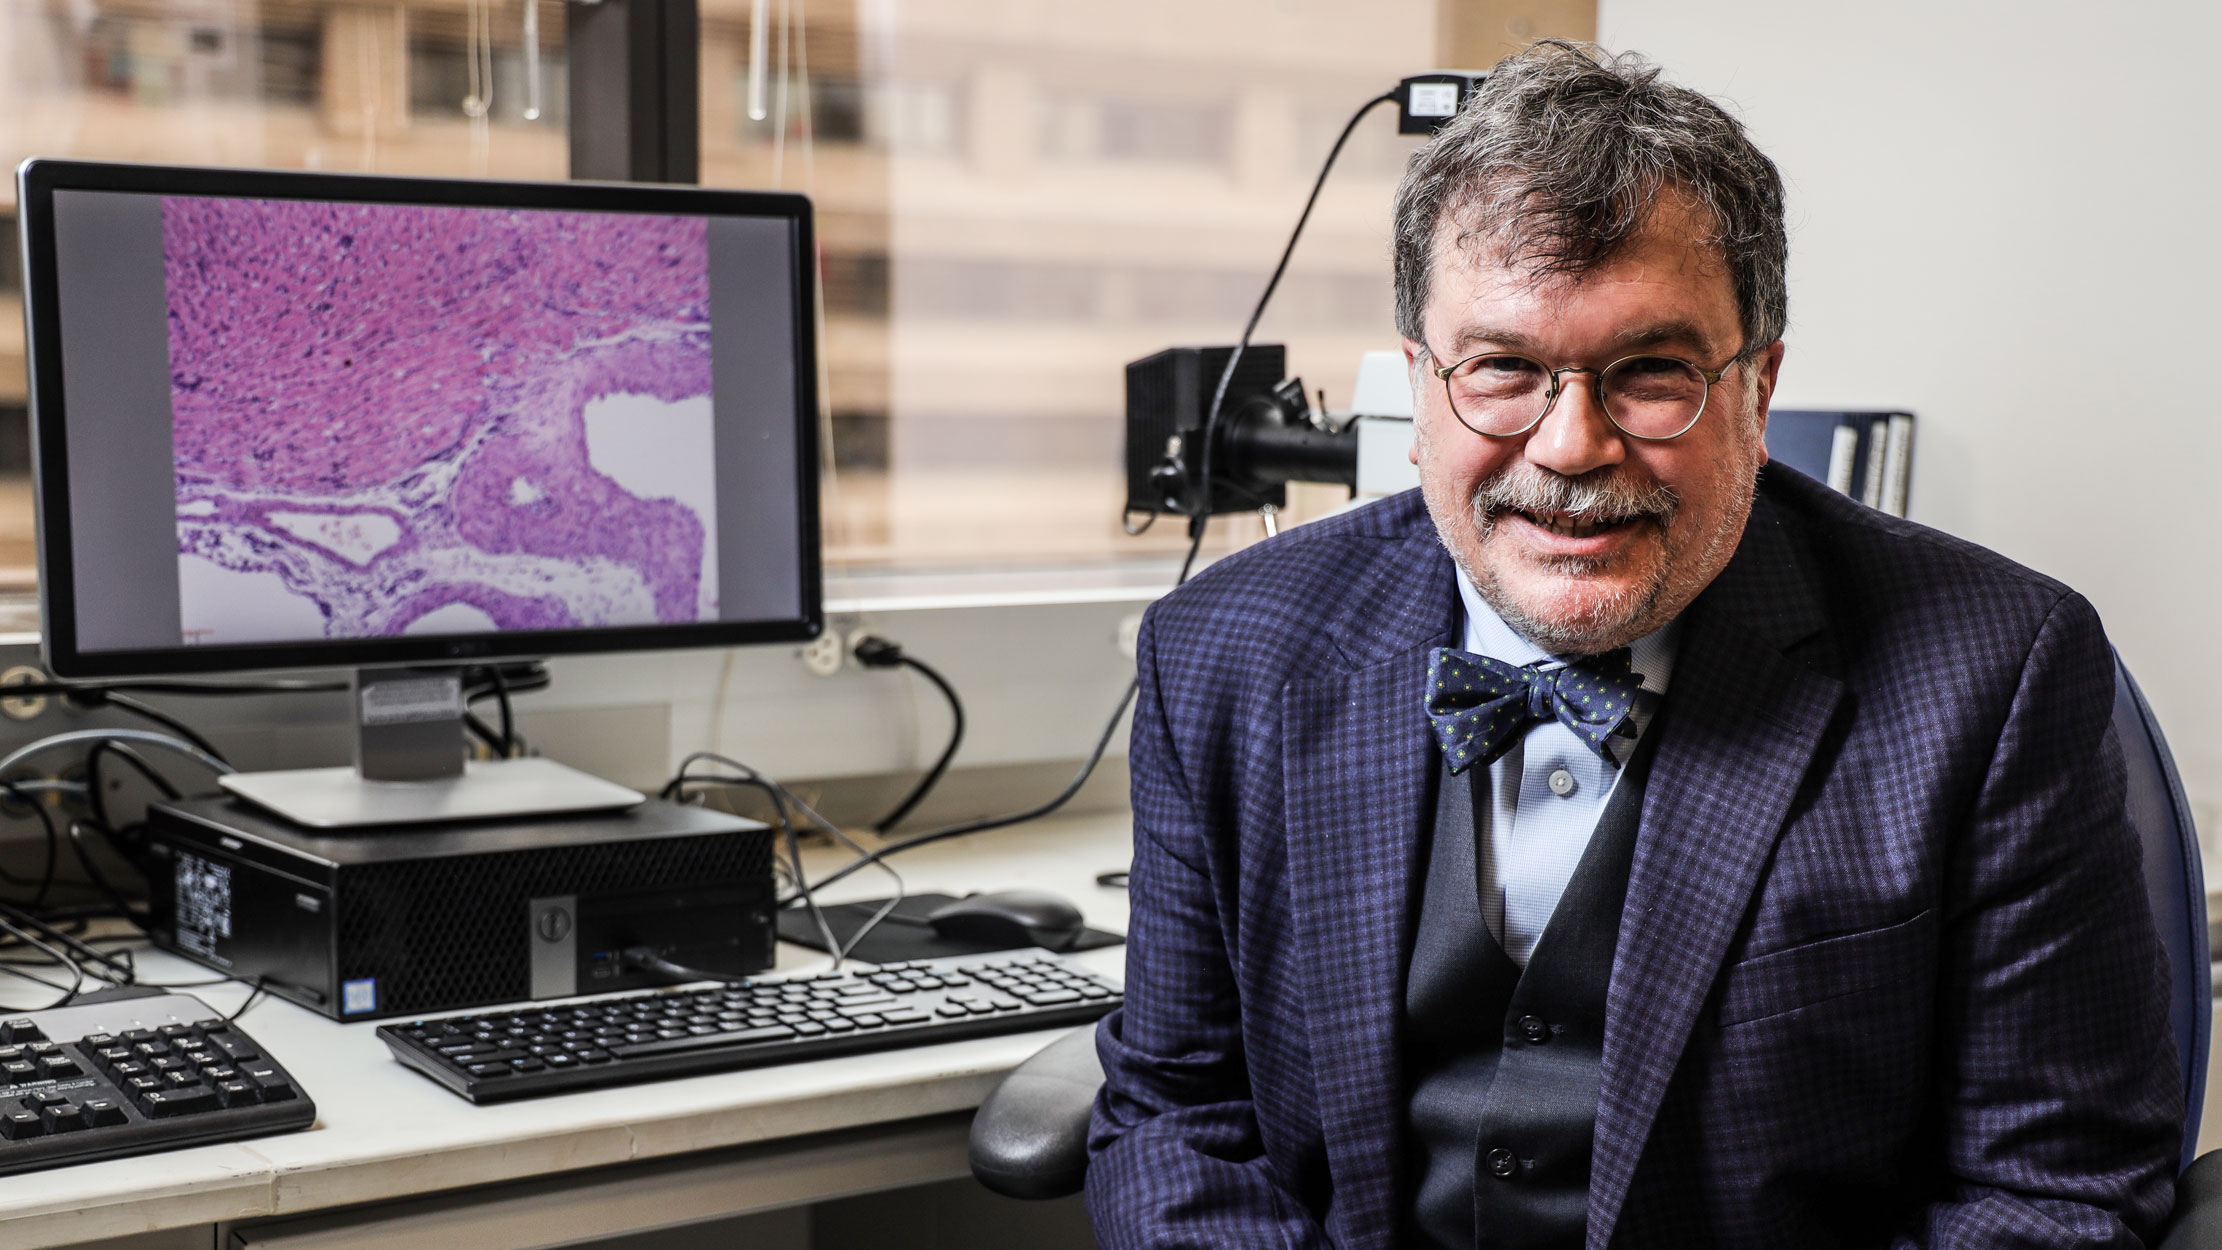 Peter Hotez, National School of Tropical Medicine dean, Baylor College of Medicine professor, University Professor at Baylor University, and co-director of the Texas Children's Hospital Center for Vaccine Development